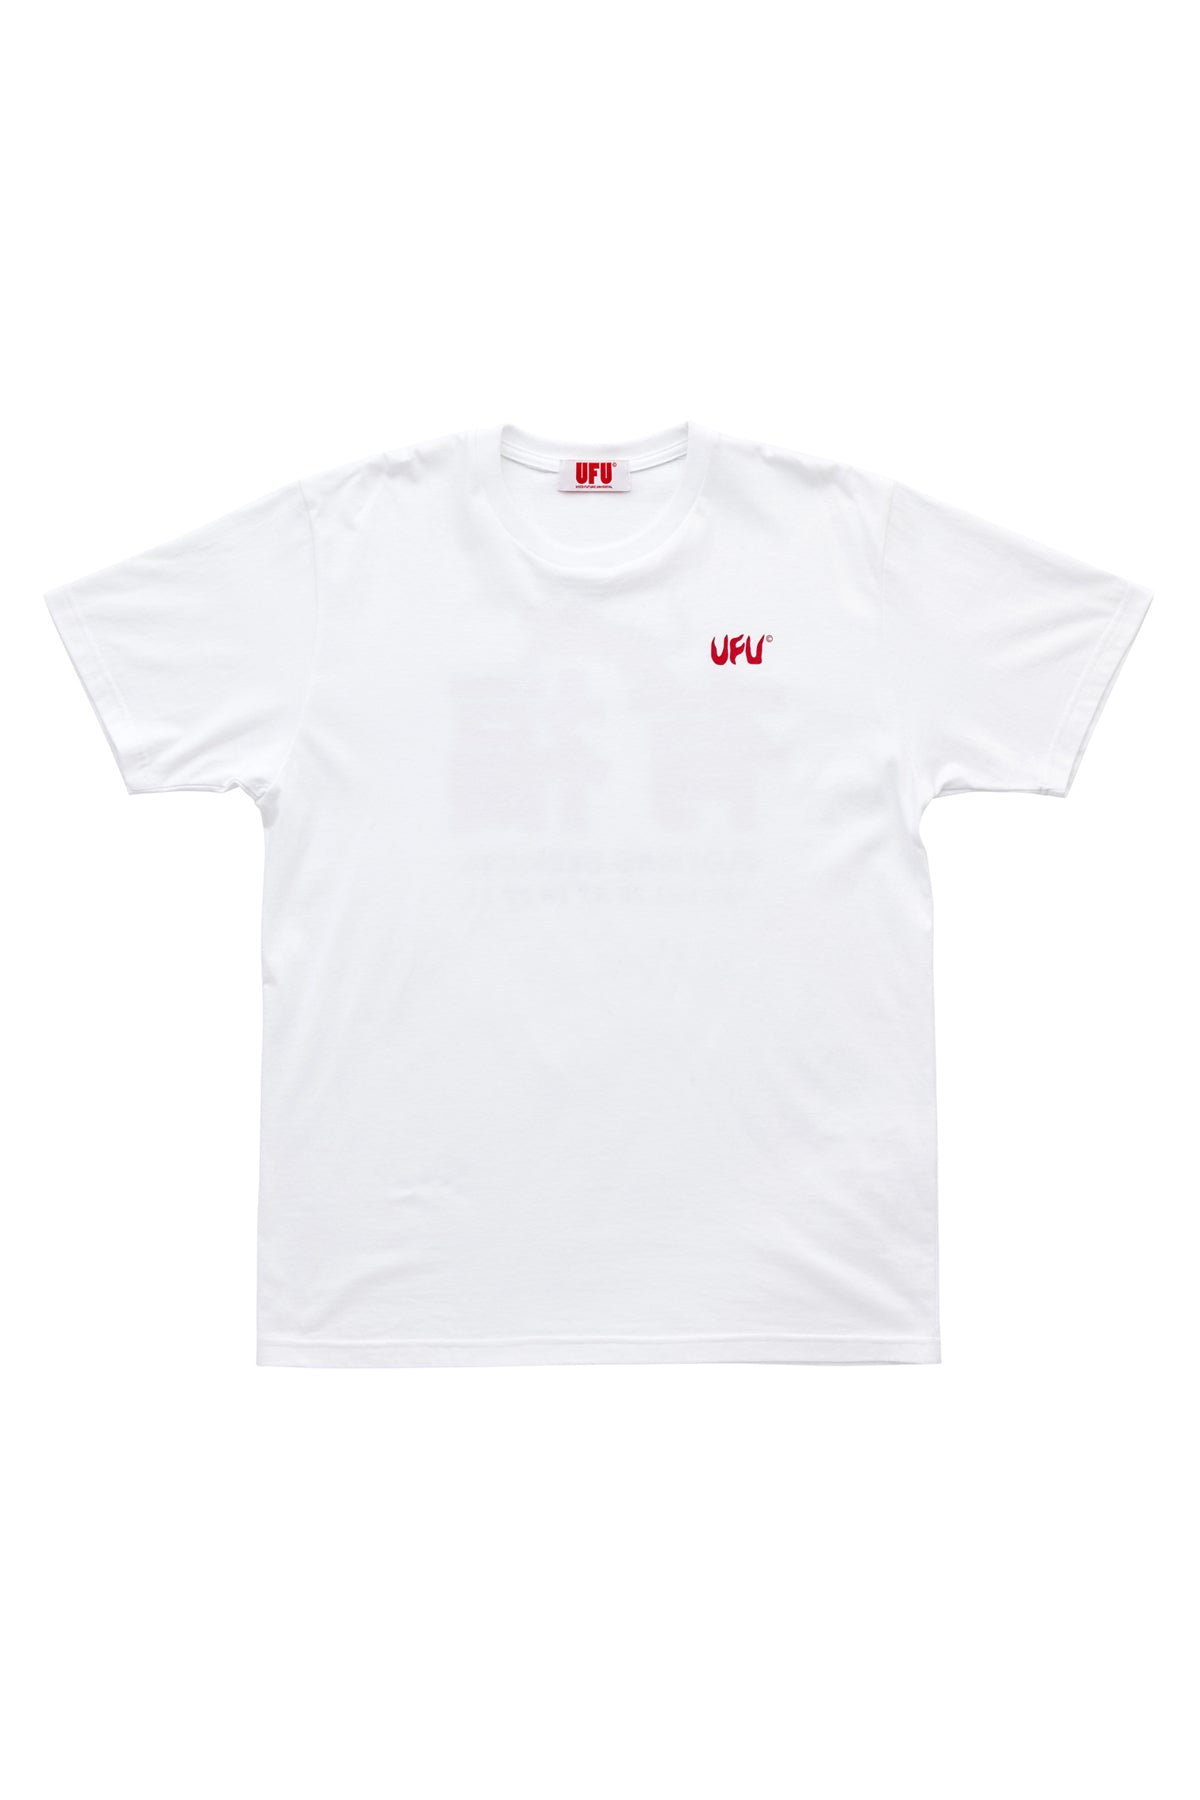 BLESSED T-SHIRT_WHITE